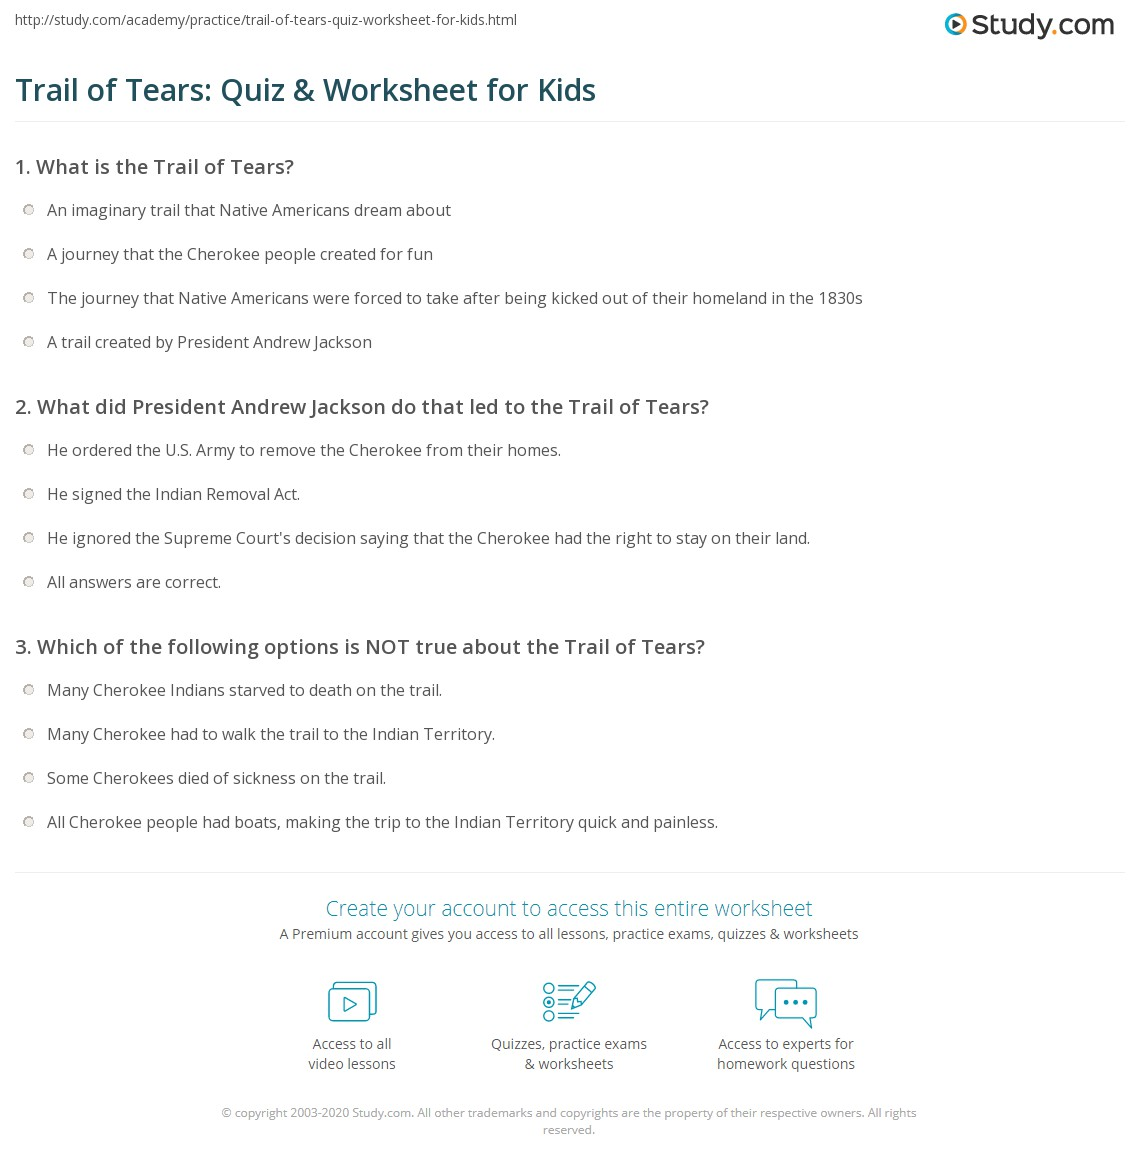 worksheet Trail Of Tears Worksheet trail of tears quiz worksheet for kids study com print the facts lesson worksheet